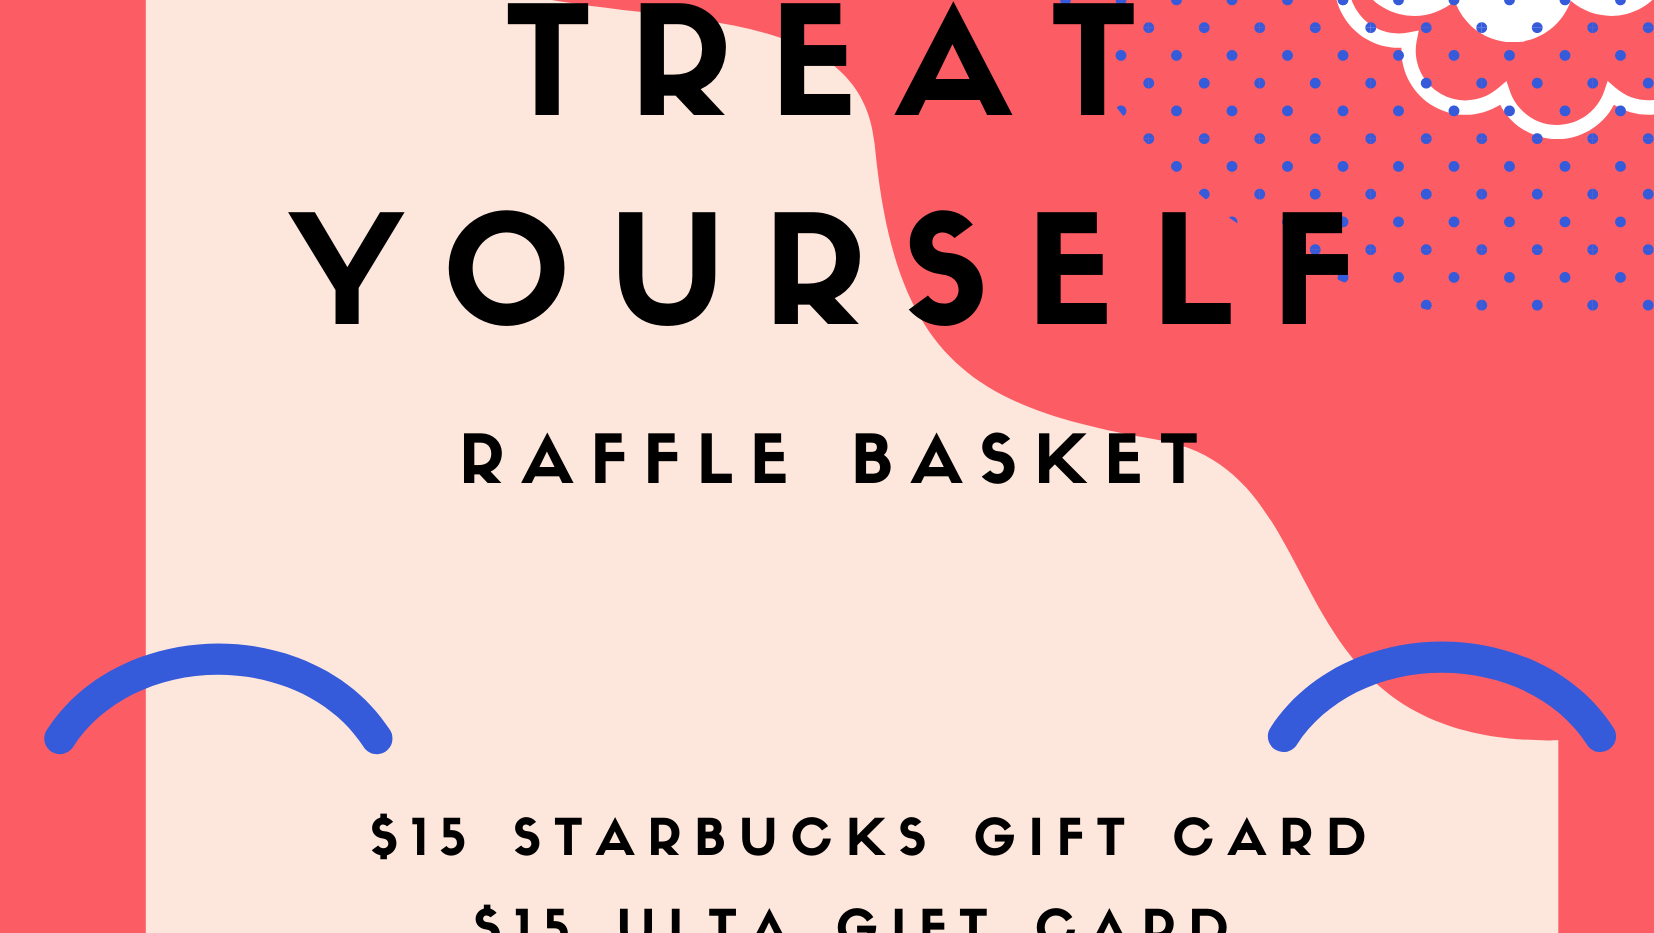 Treat Yourself Basket  (1).png